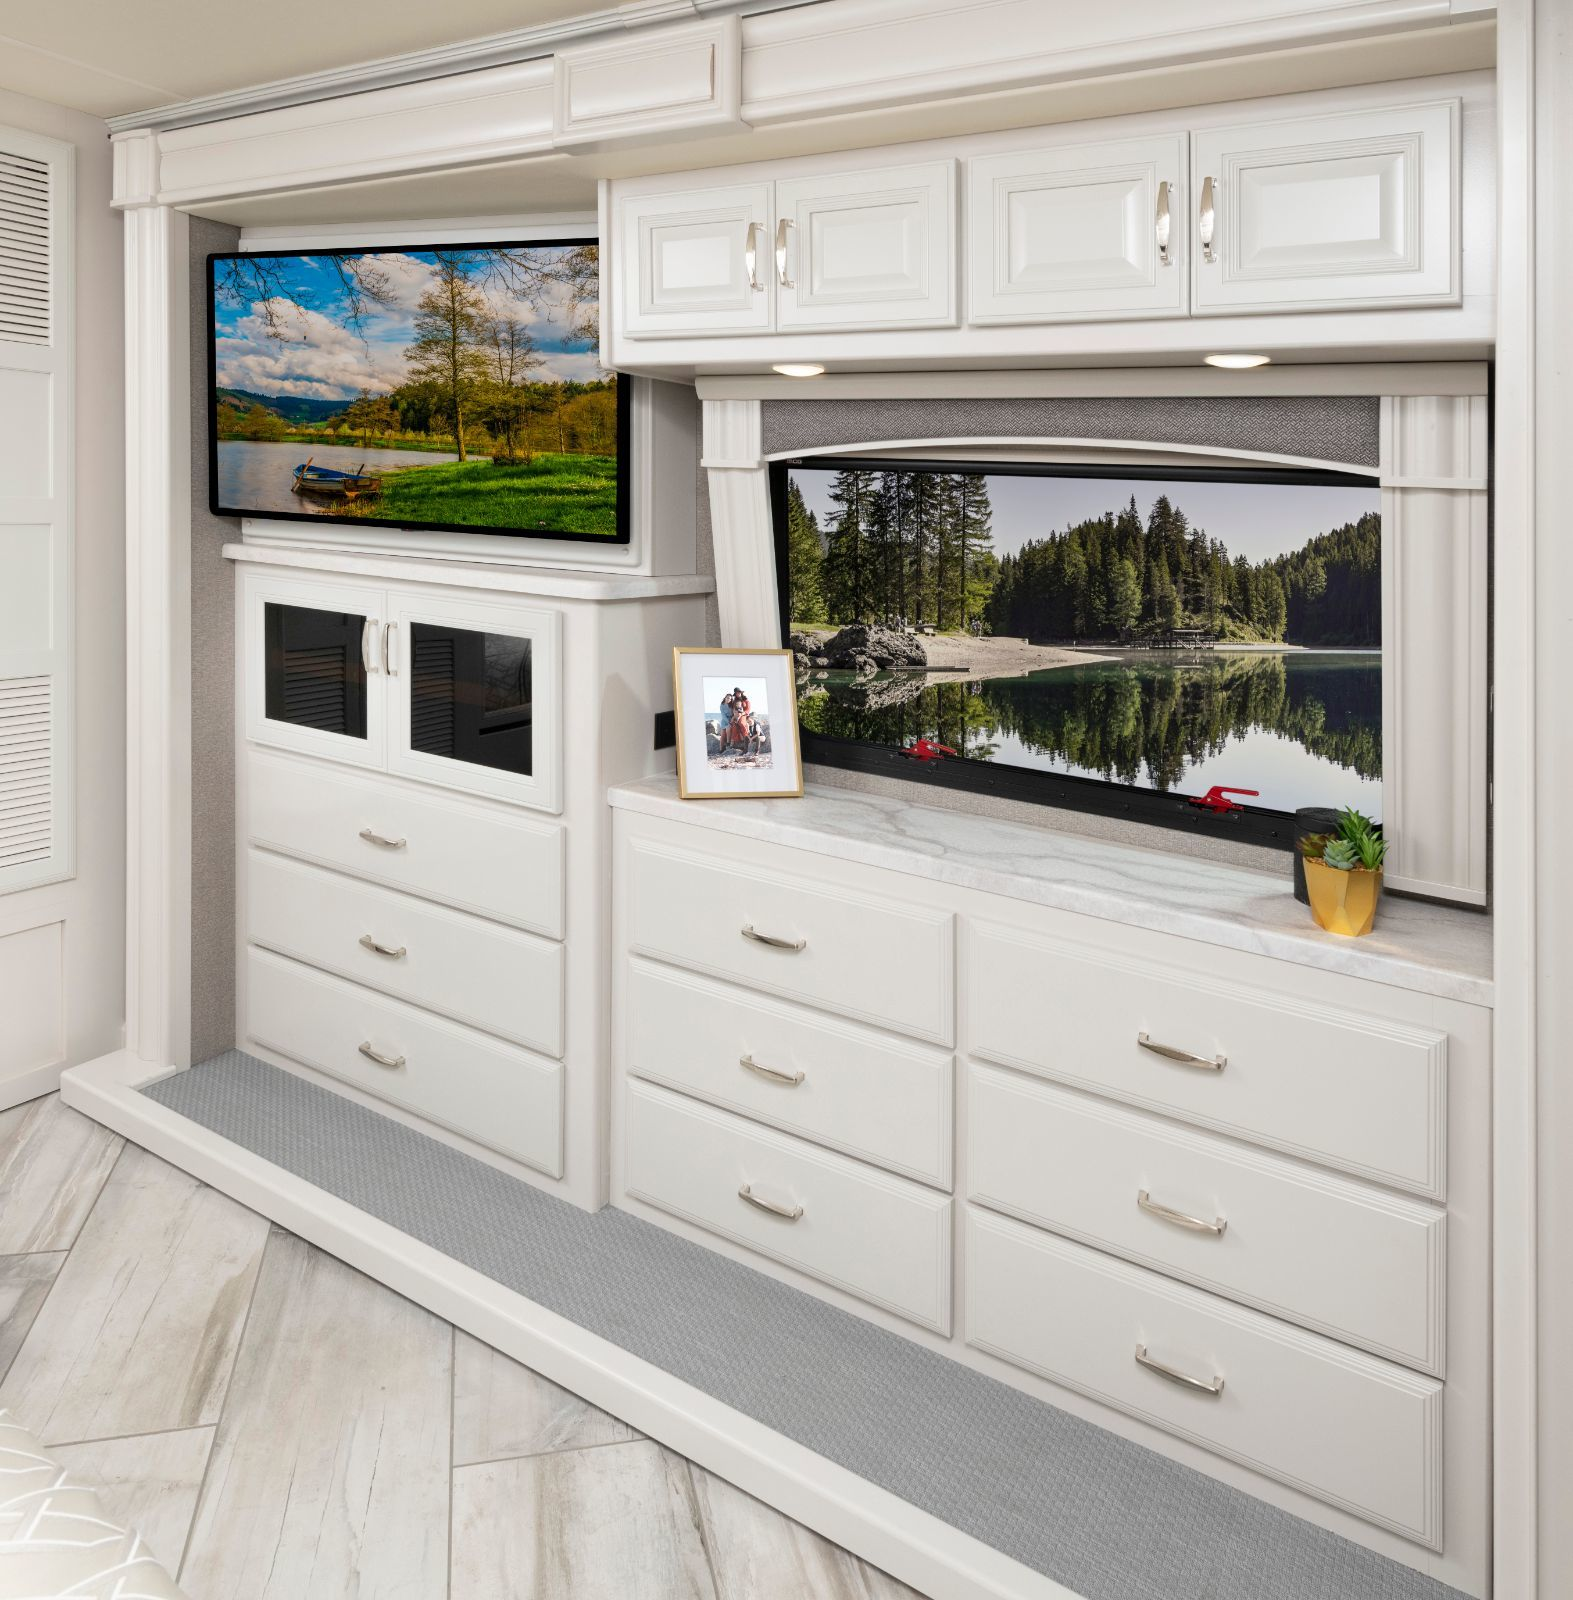 Discovery 38F Ridgeland Taupe Decor with Heritage Cabinetry